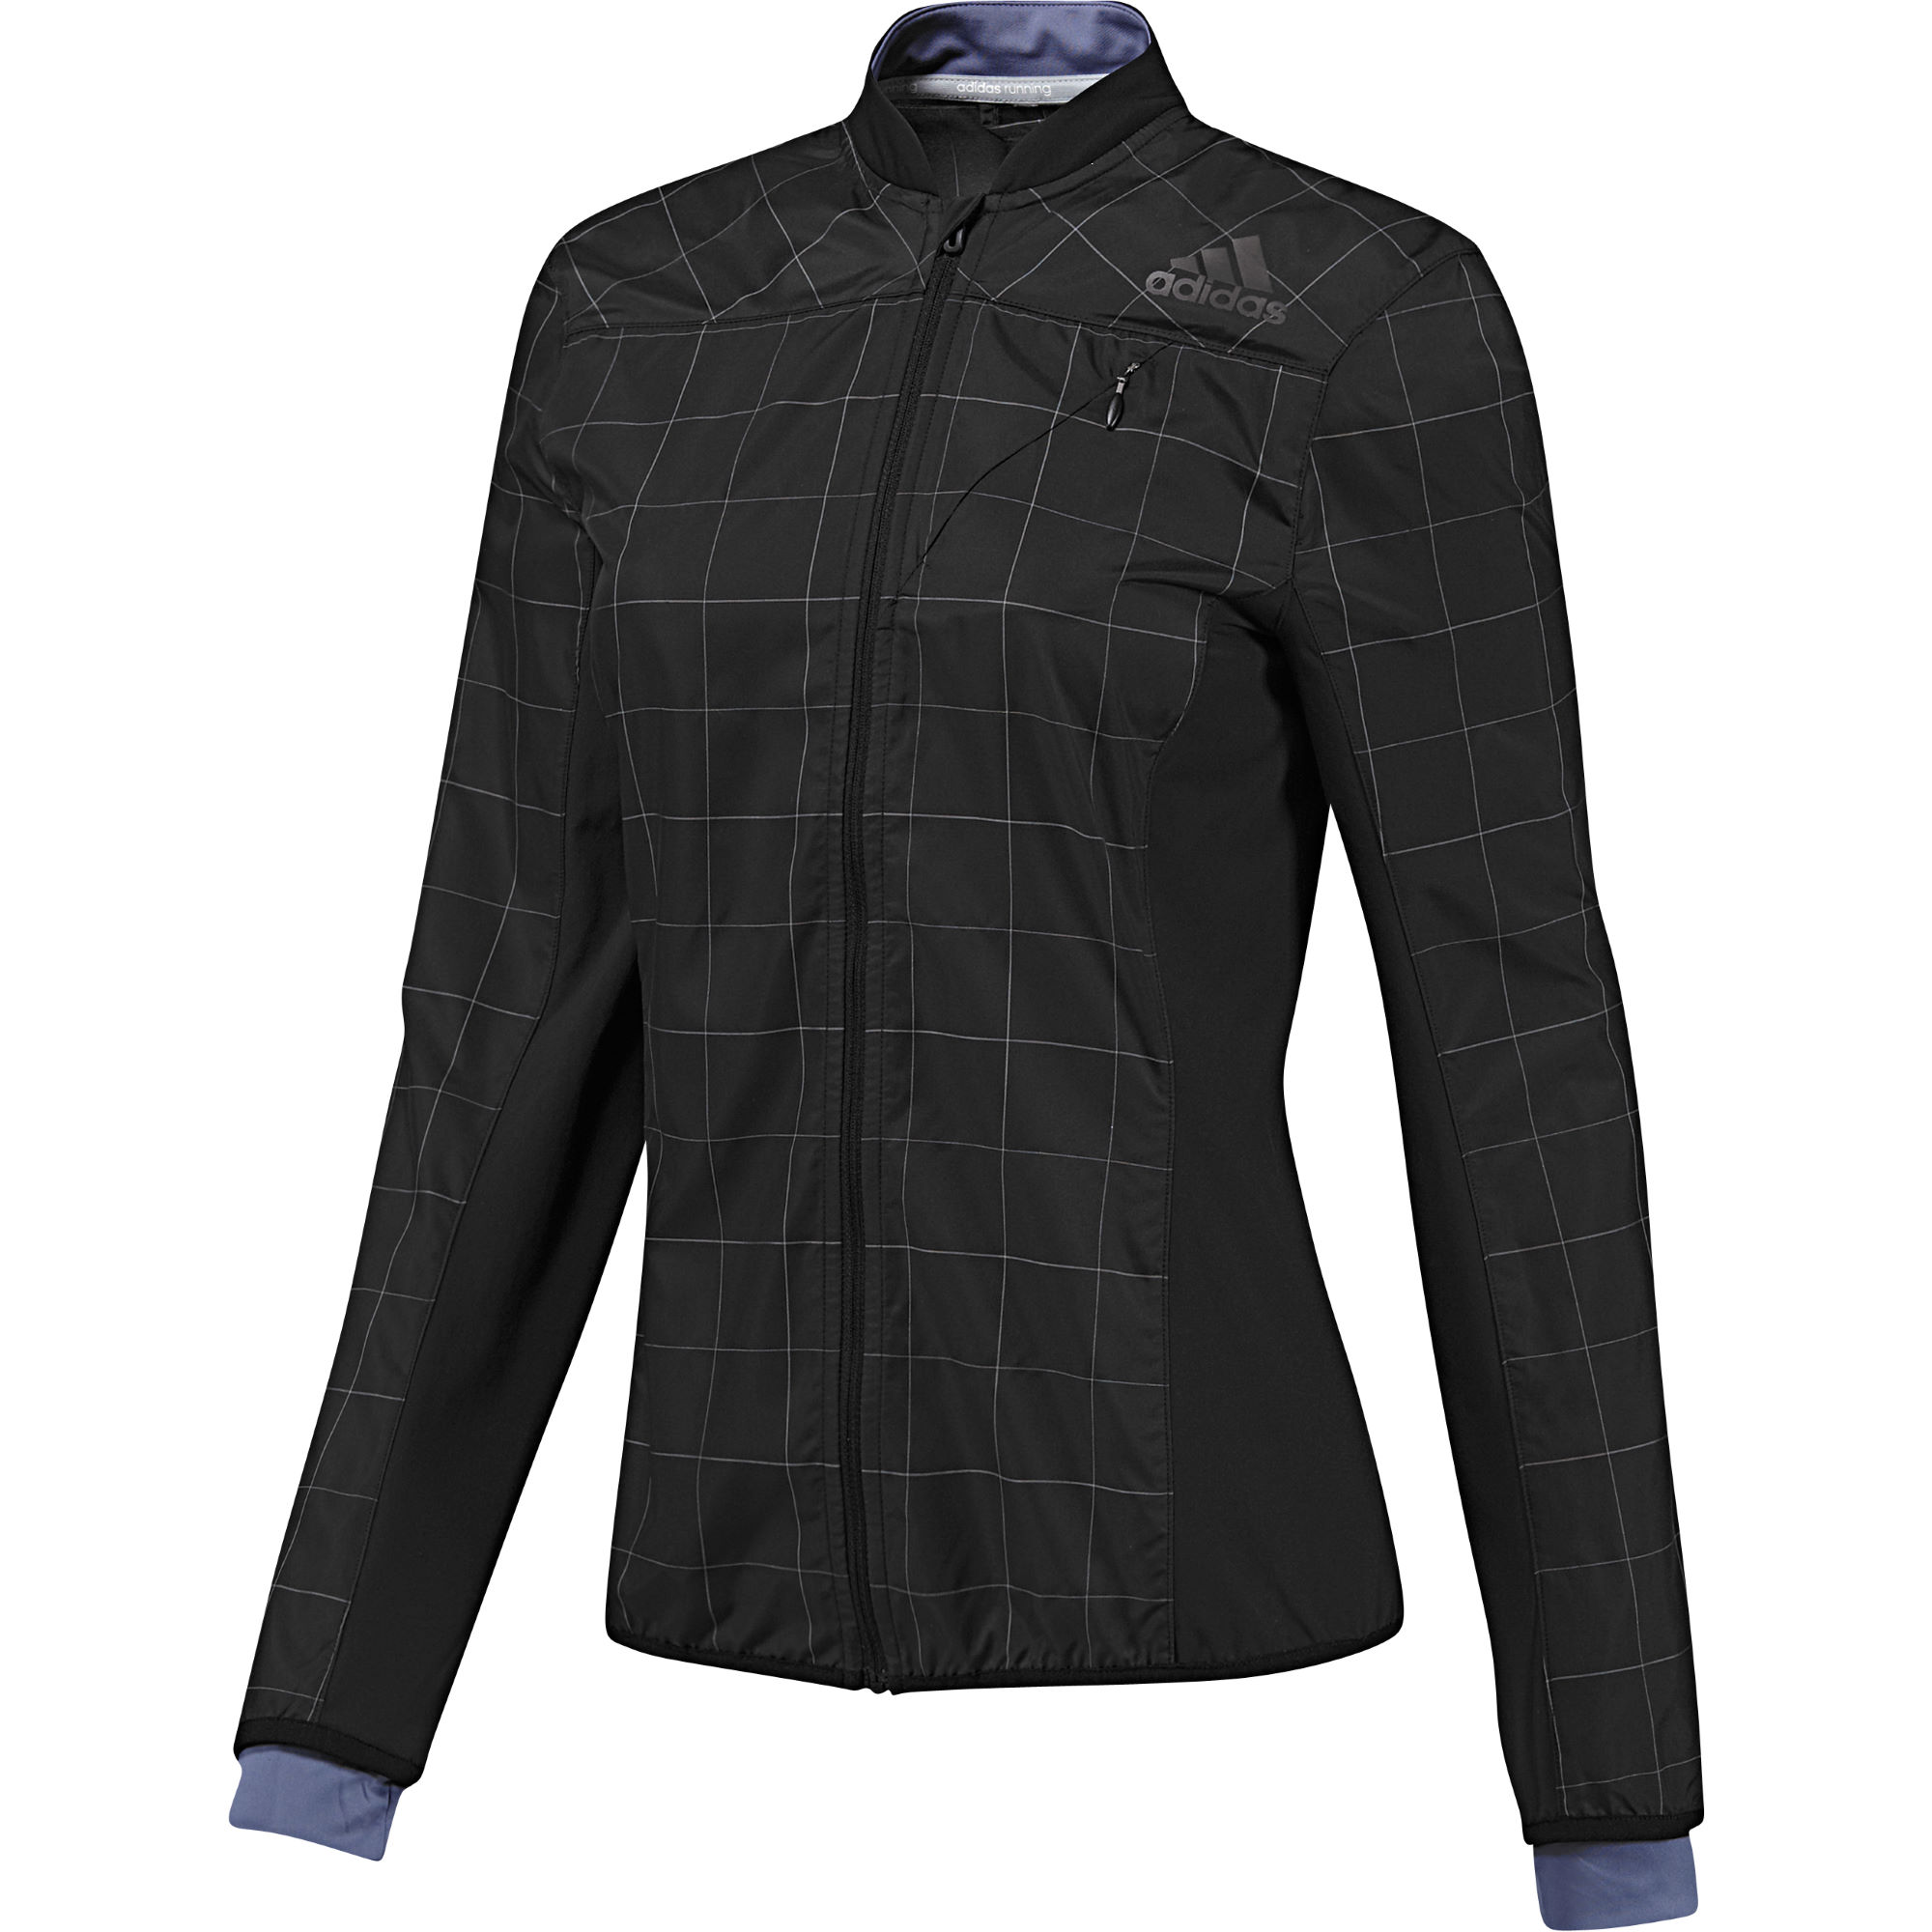 plus size men smart jacket coat cashmere woolen outerwear long coat warm fashion. Brand New · Unbranded. $ From China. Buy It Now +$ shipping. Smart Women's Motorcycle Jackets. Men's Leather Smart Motorcycle Jackets. Smart Men Motorcycle Jackets. Leather Smart Motorcycle Jackets. Feedback.